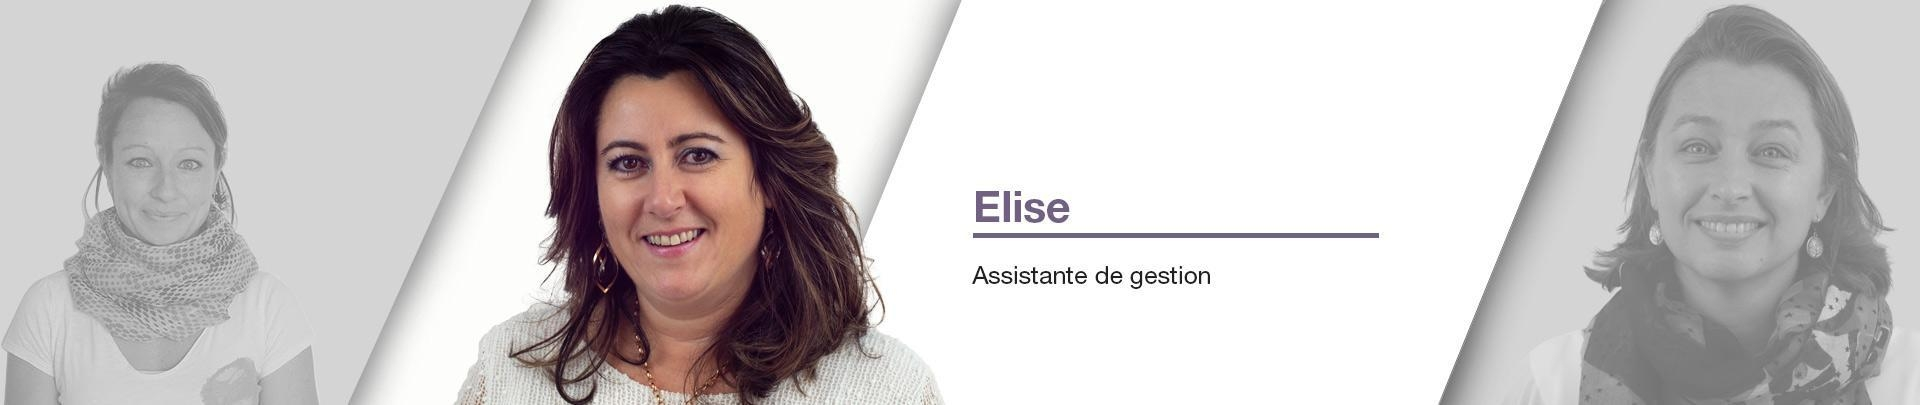 Elise Dassaud - Assistante de gestion